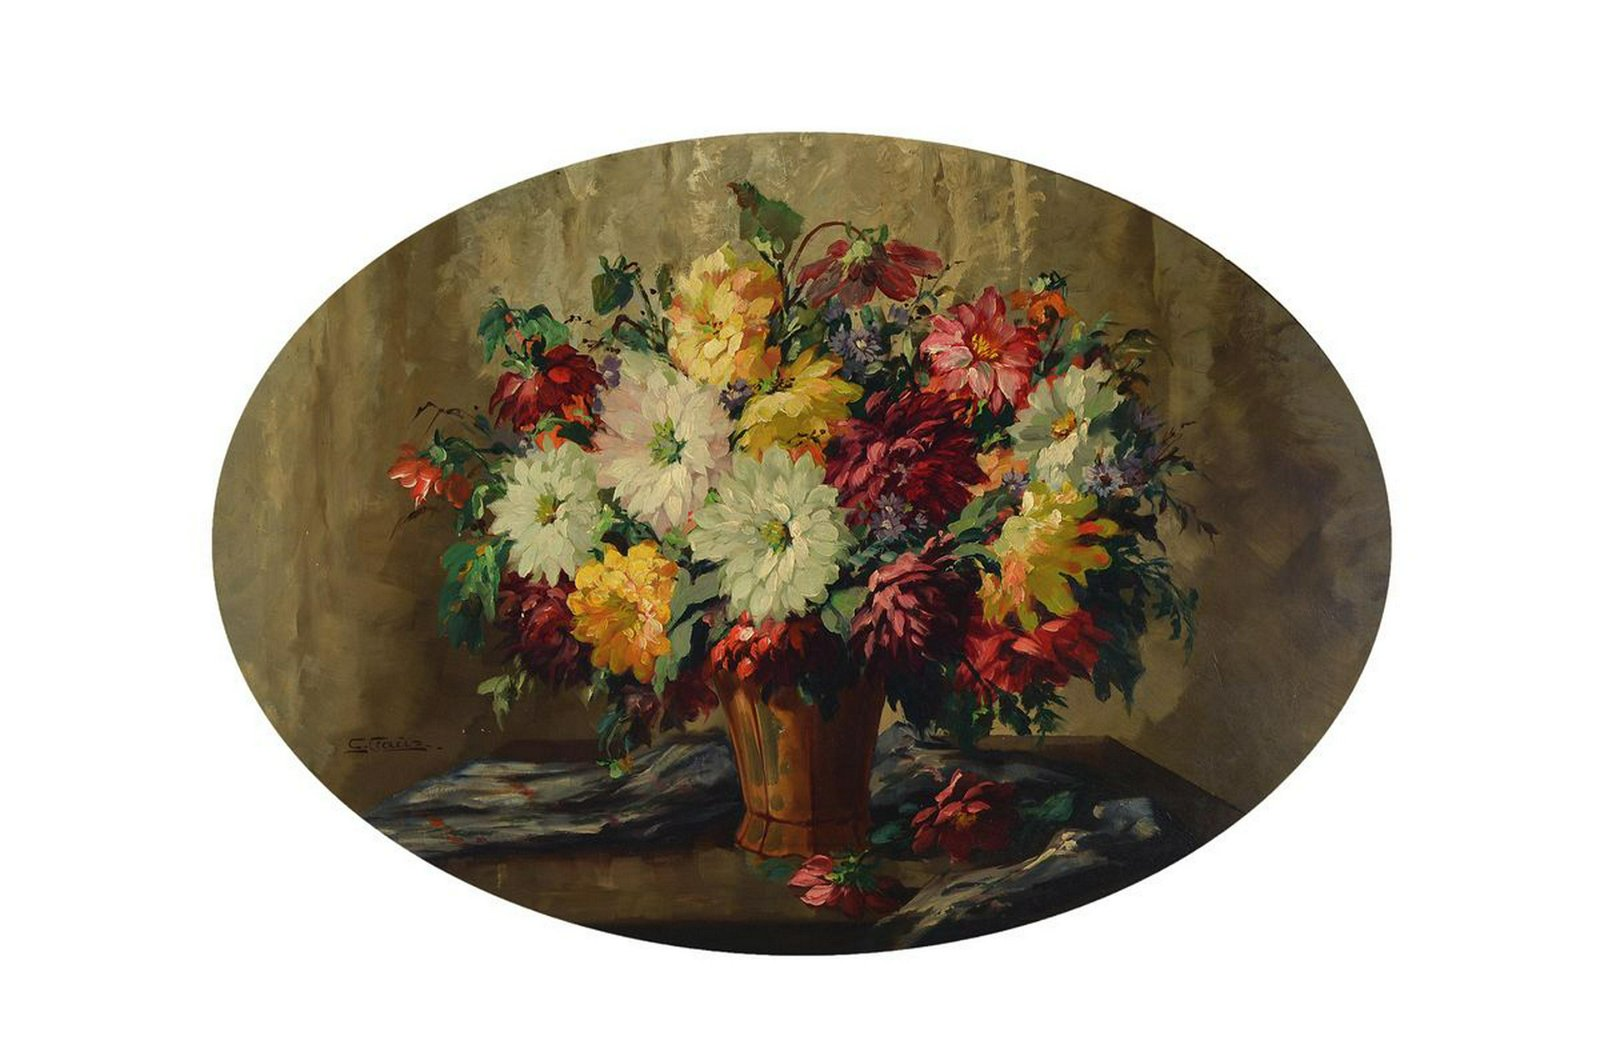 C. Claus, German flower painter, 1st half of the 20th